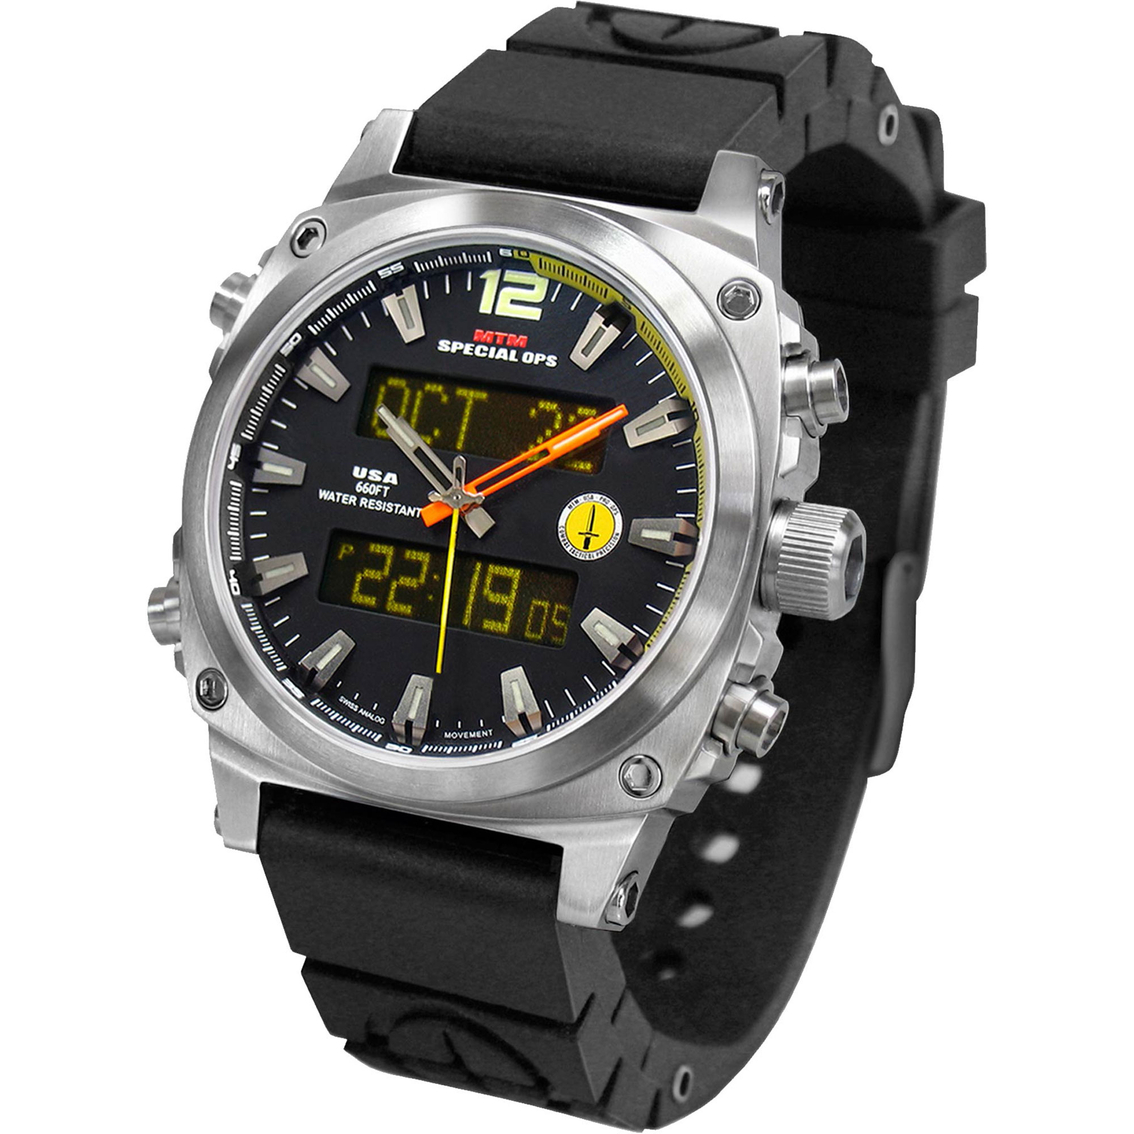 Mtm Special Ops Mens Silver Air Stryk Watch With Rubber Strap Watches Military Shop The